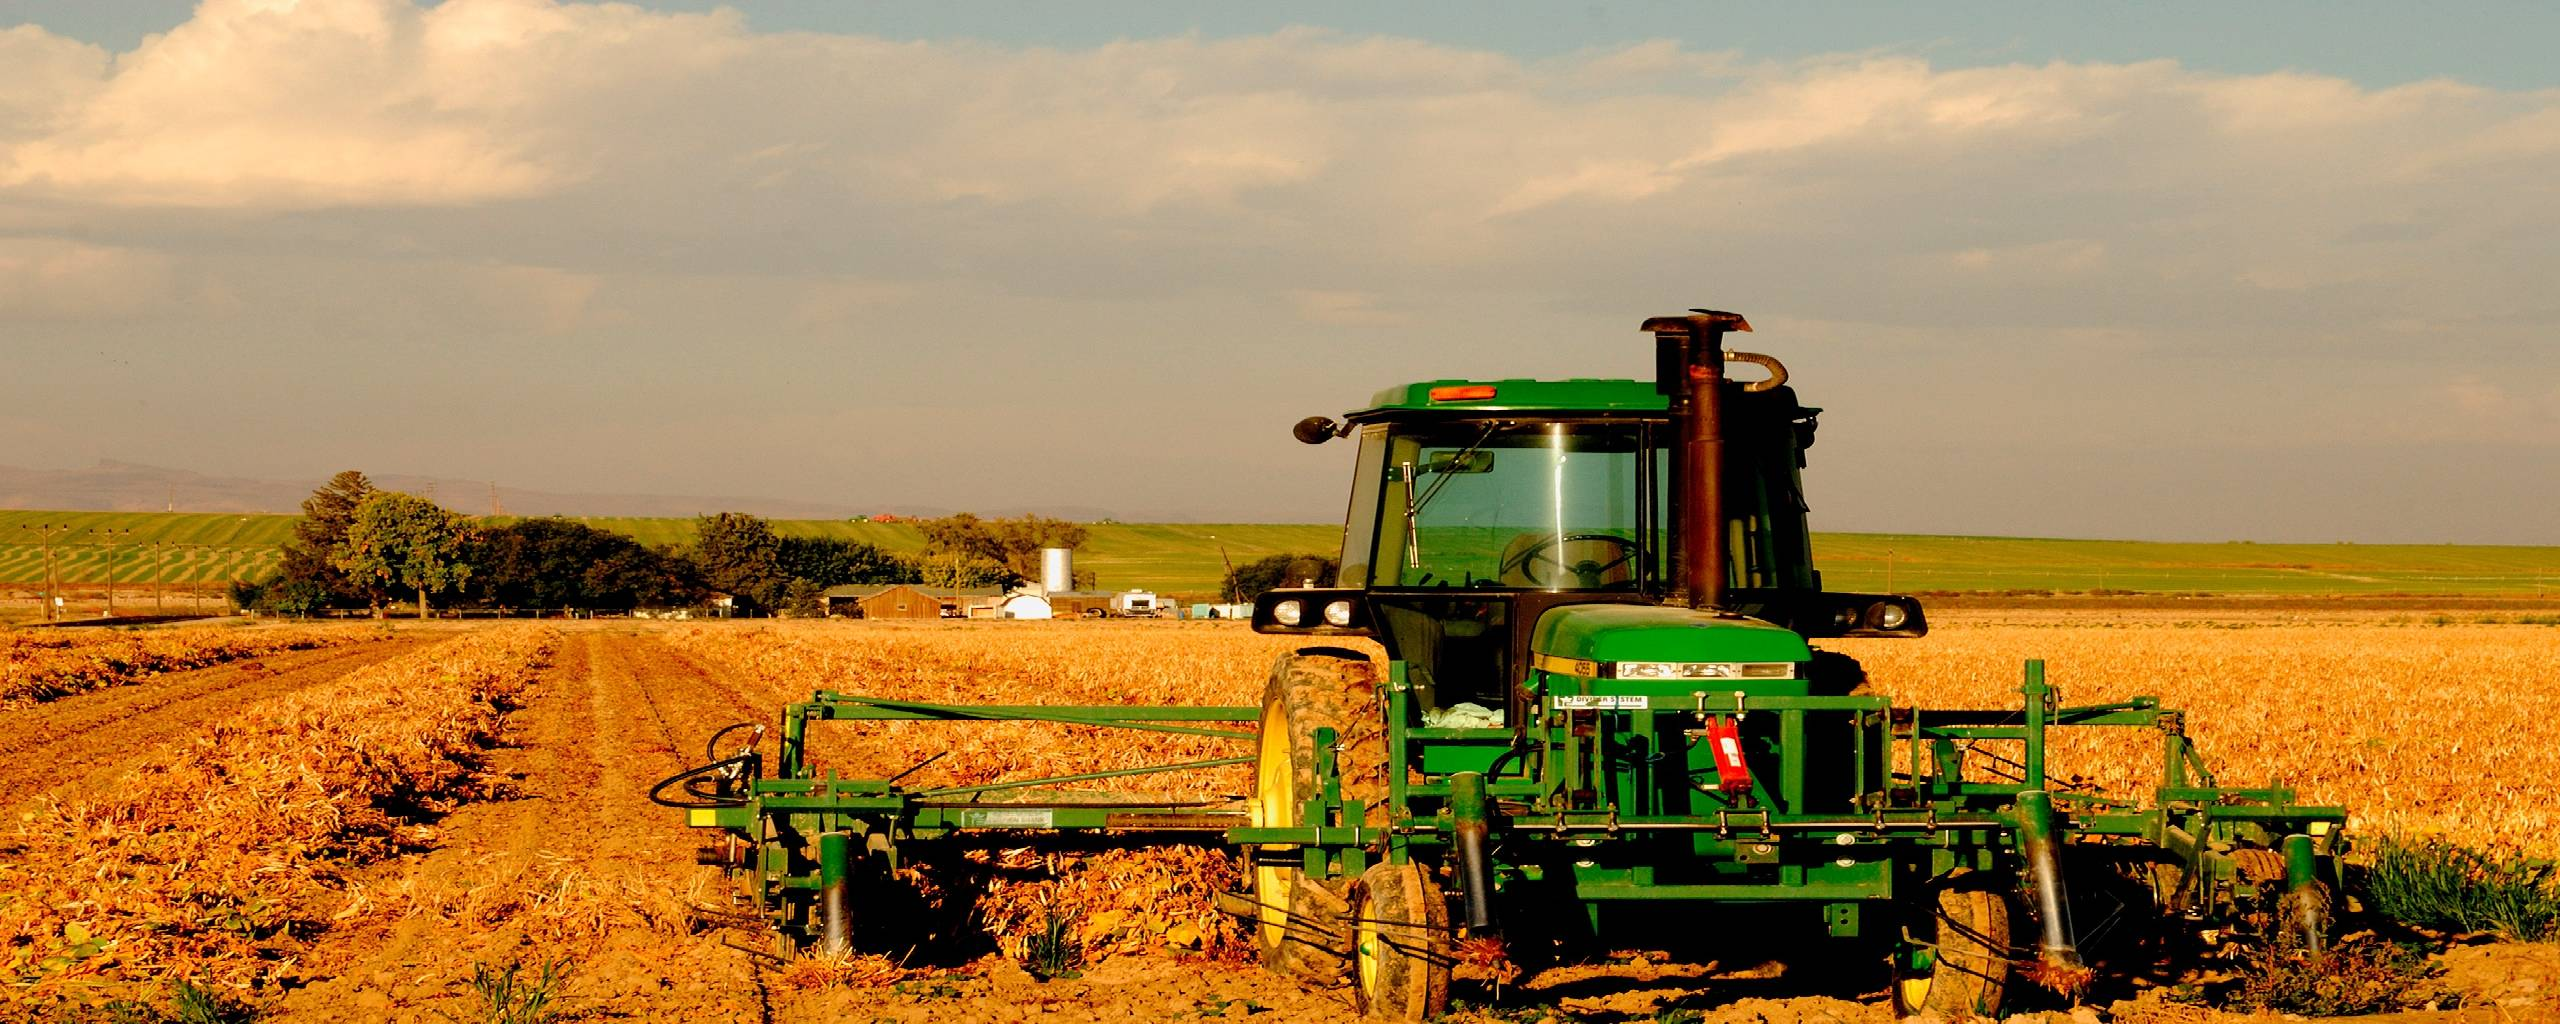 Wallpapers For > Farm Tractor Wallpapers